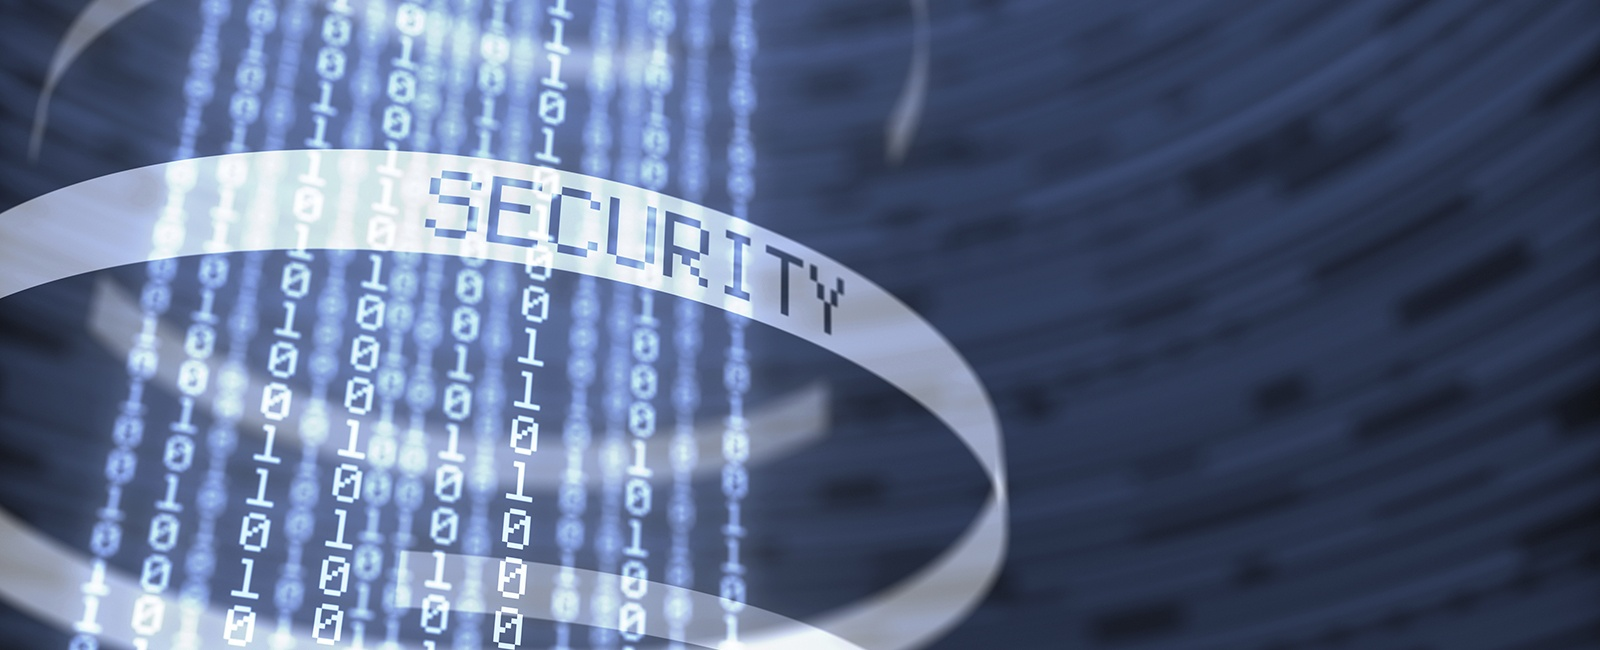 4 Ways To Ensure Network Physical Security